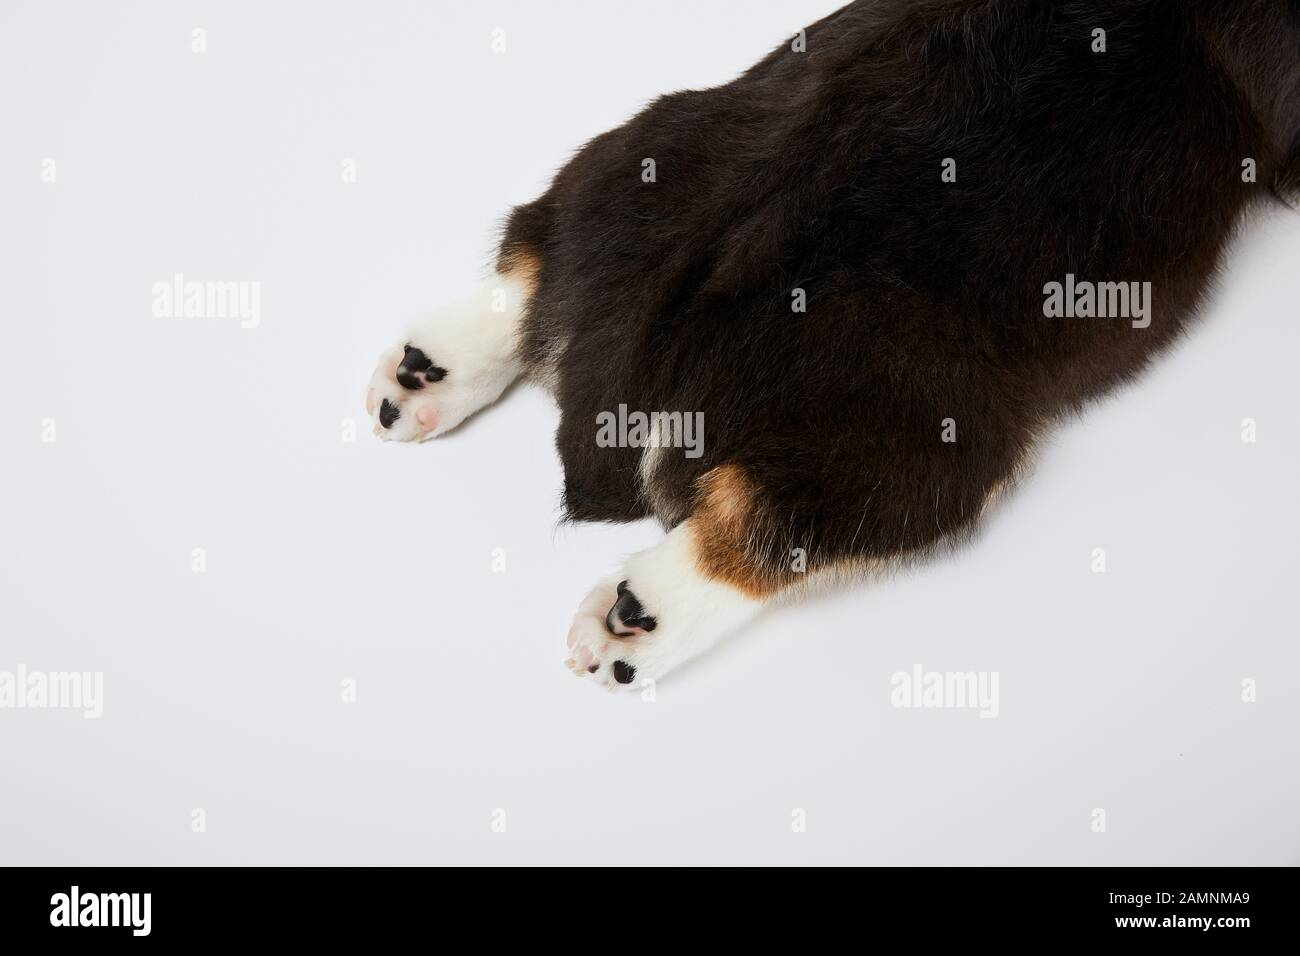 Cropped View Of Welsh Corgi Puppy Paws And Tail Isolated On White Stock Photo Alamy